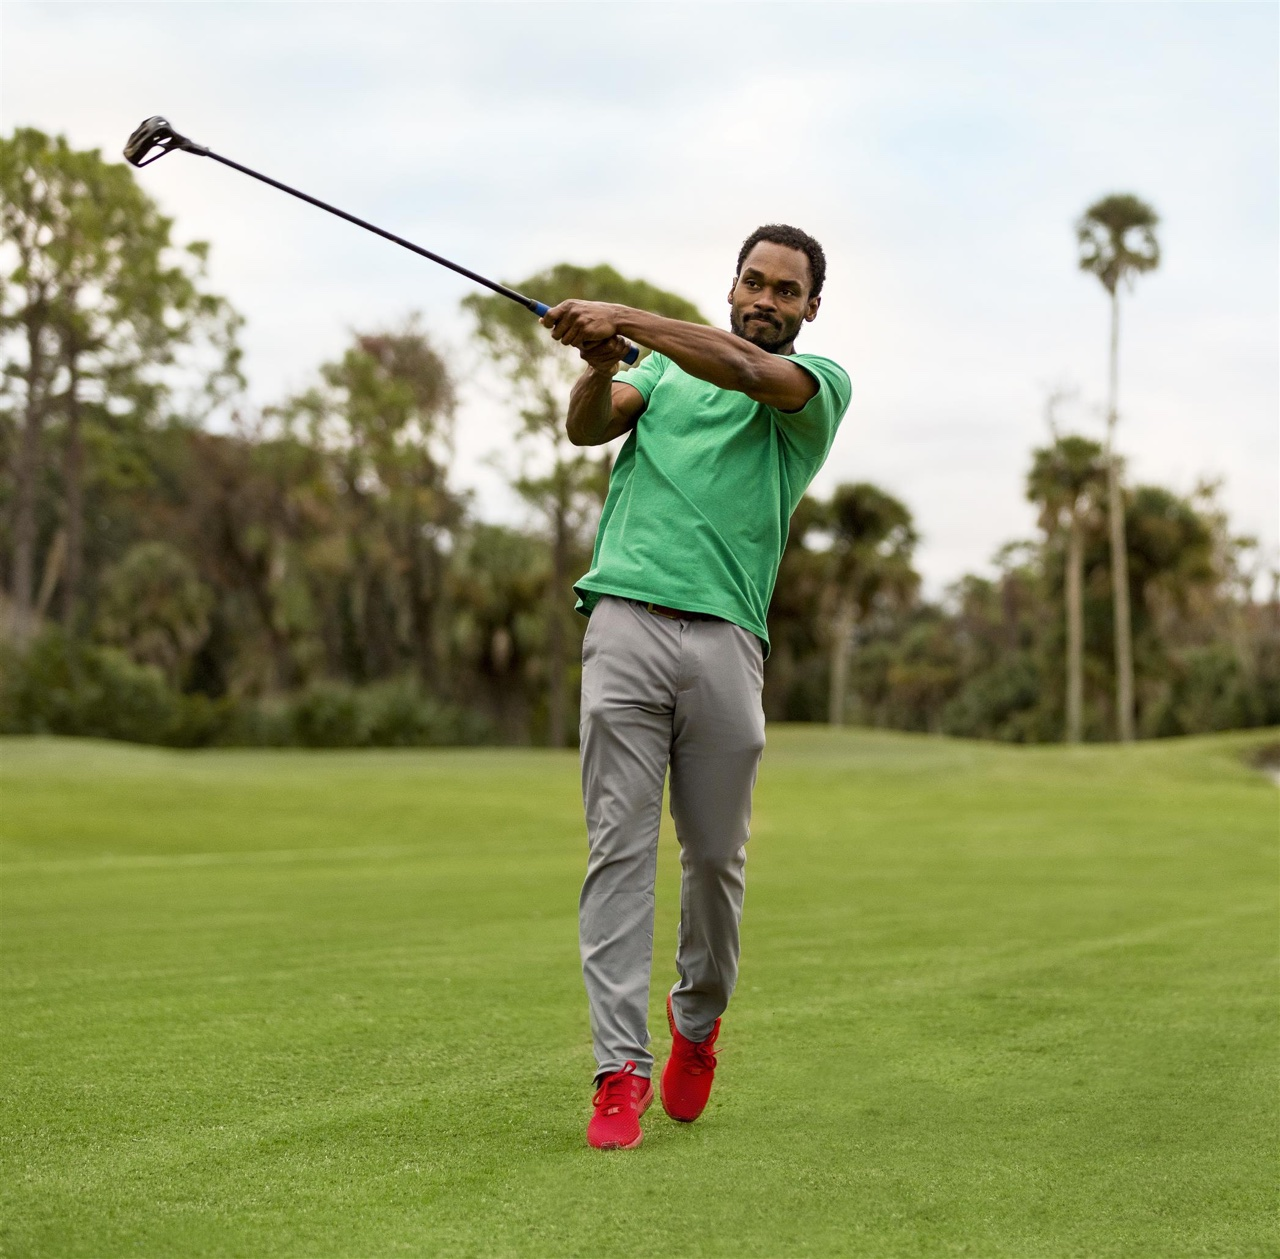 FlingGolf player in action on the course